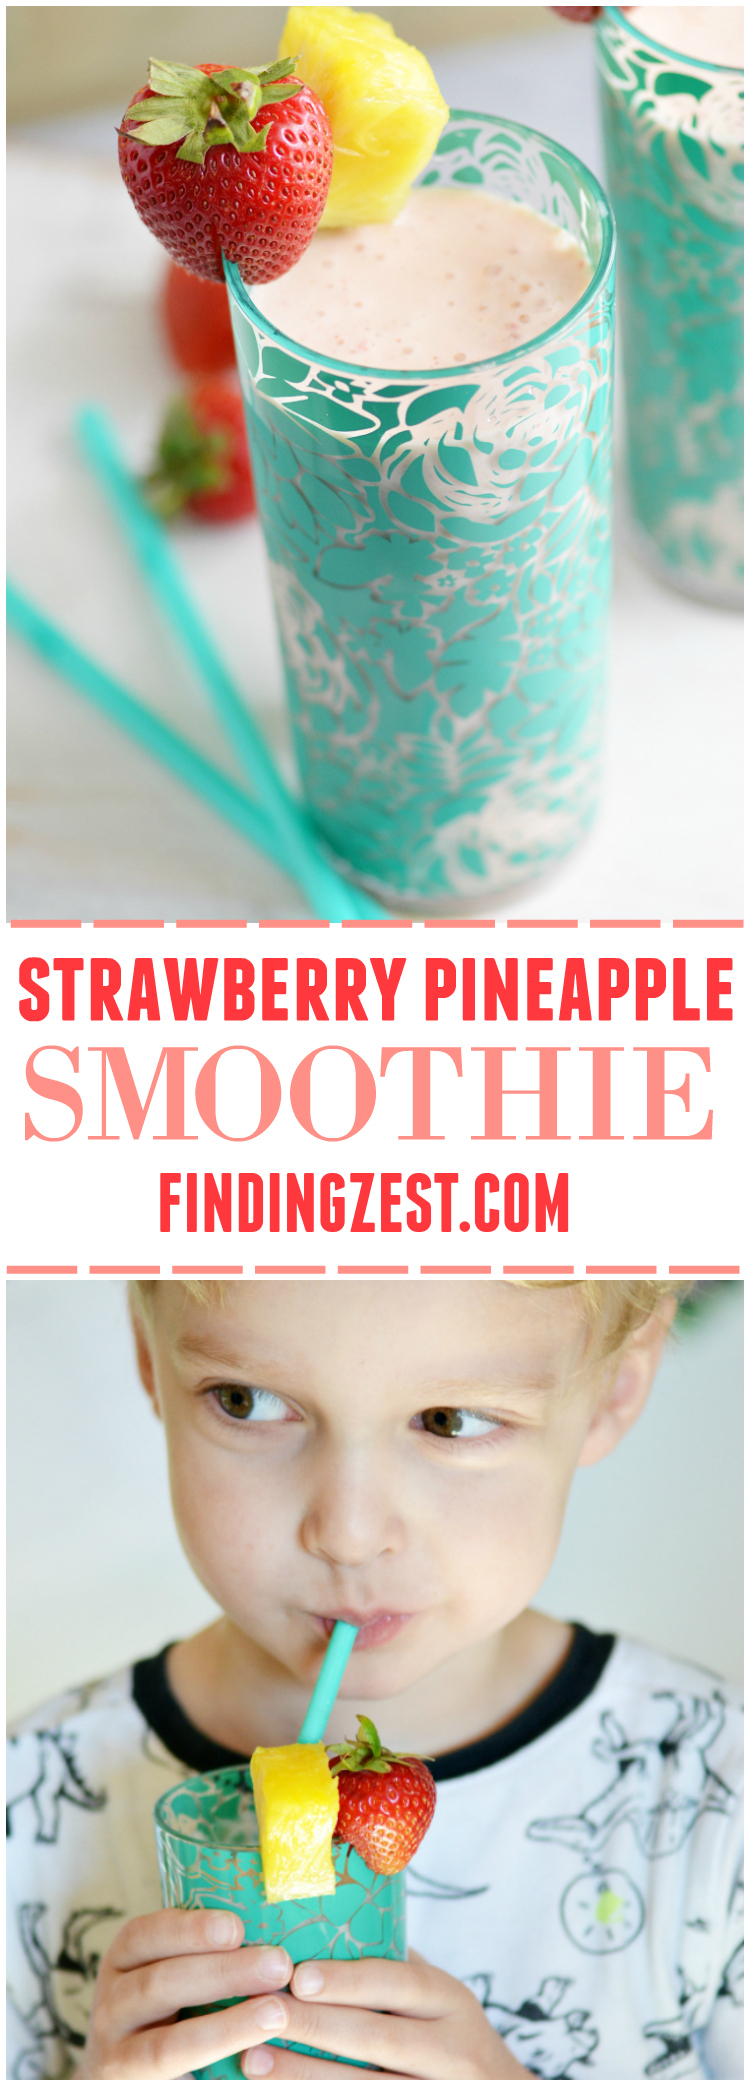 Learn how to keep your produce fresh longer, plus get a recipe for a refreshing strawberry pineapple smoothie. It is a perfect breakfast or snack option!